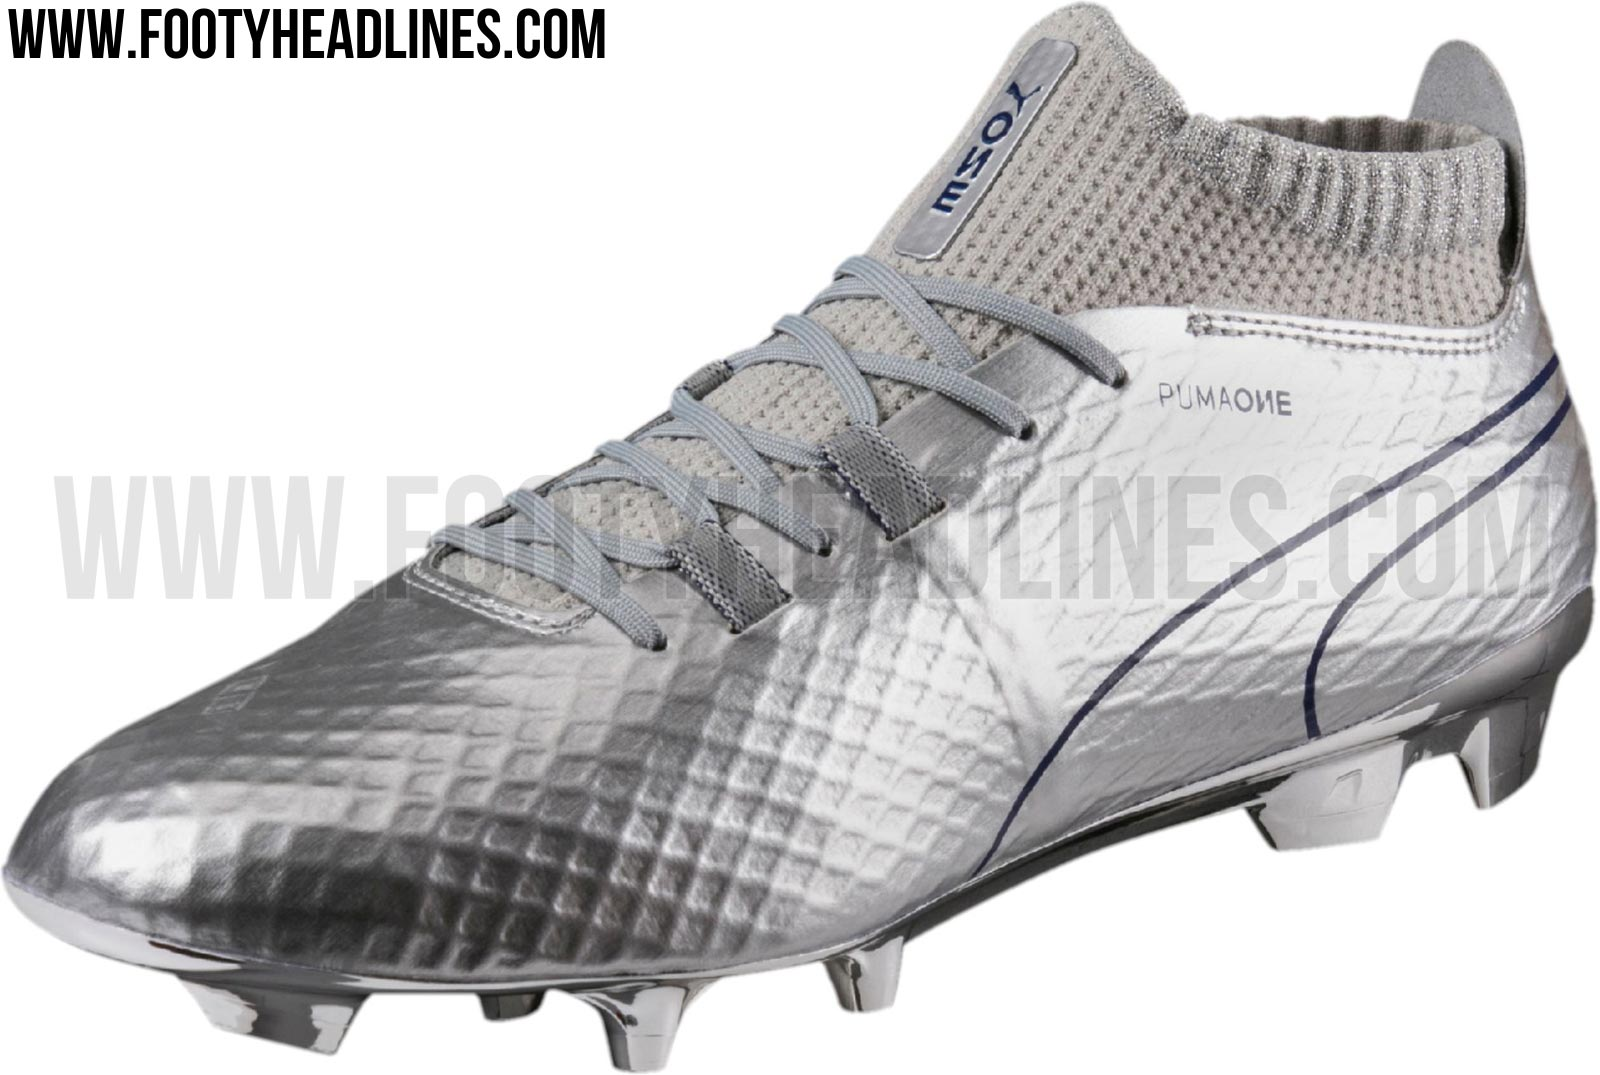 Special-Edition Puma ONE Chrome 2017-2018 Boots Released ...